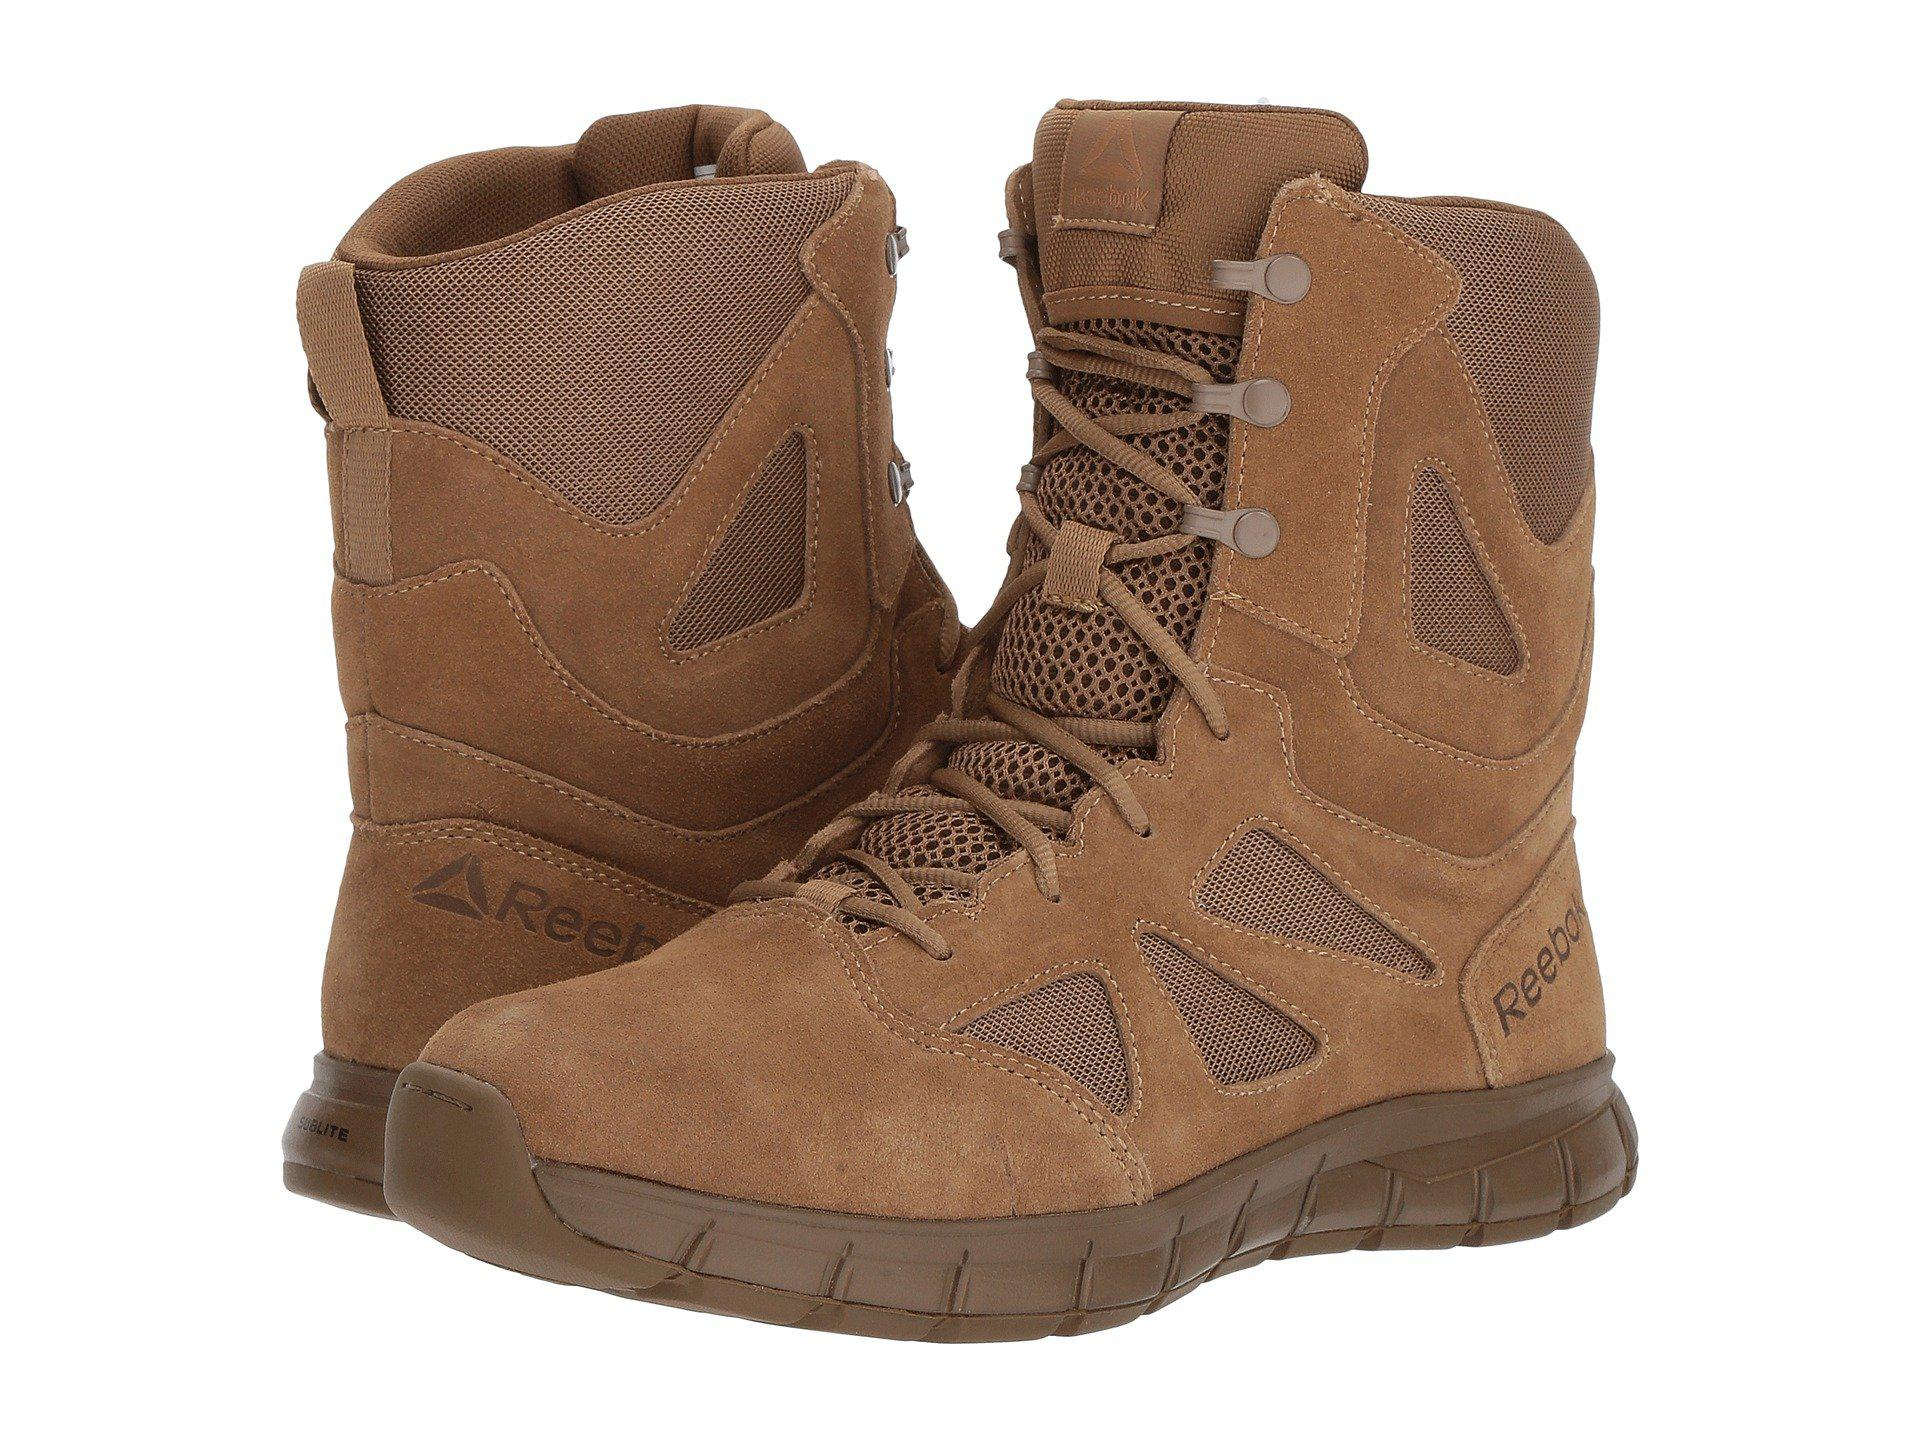 05ed0884fe63 Lyst - Reebok Sublite Cushion Tactical Ar670-1 Compliant (coyote ...